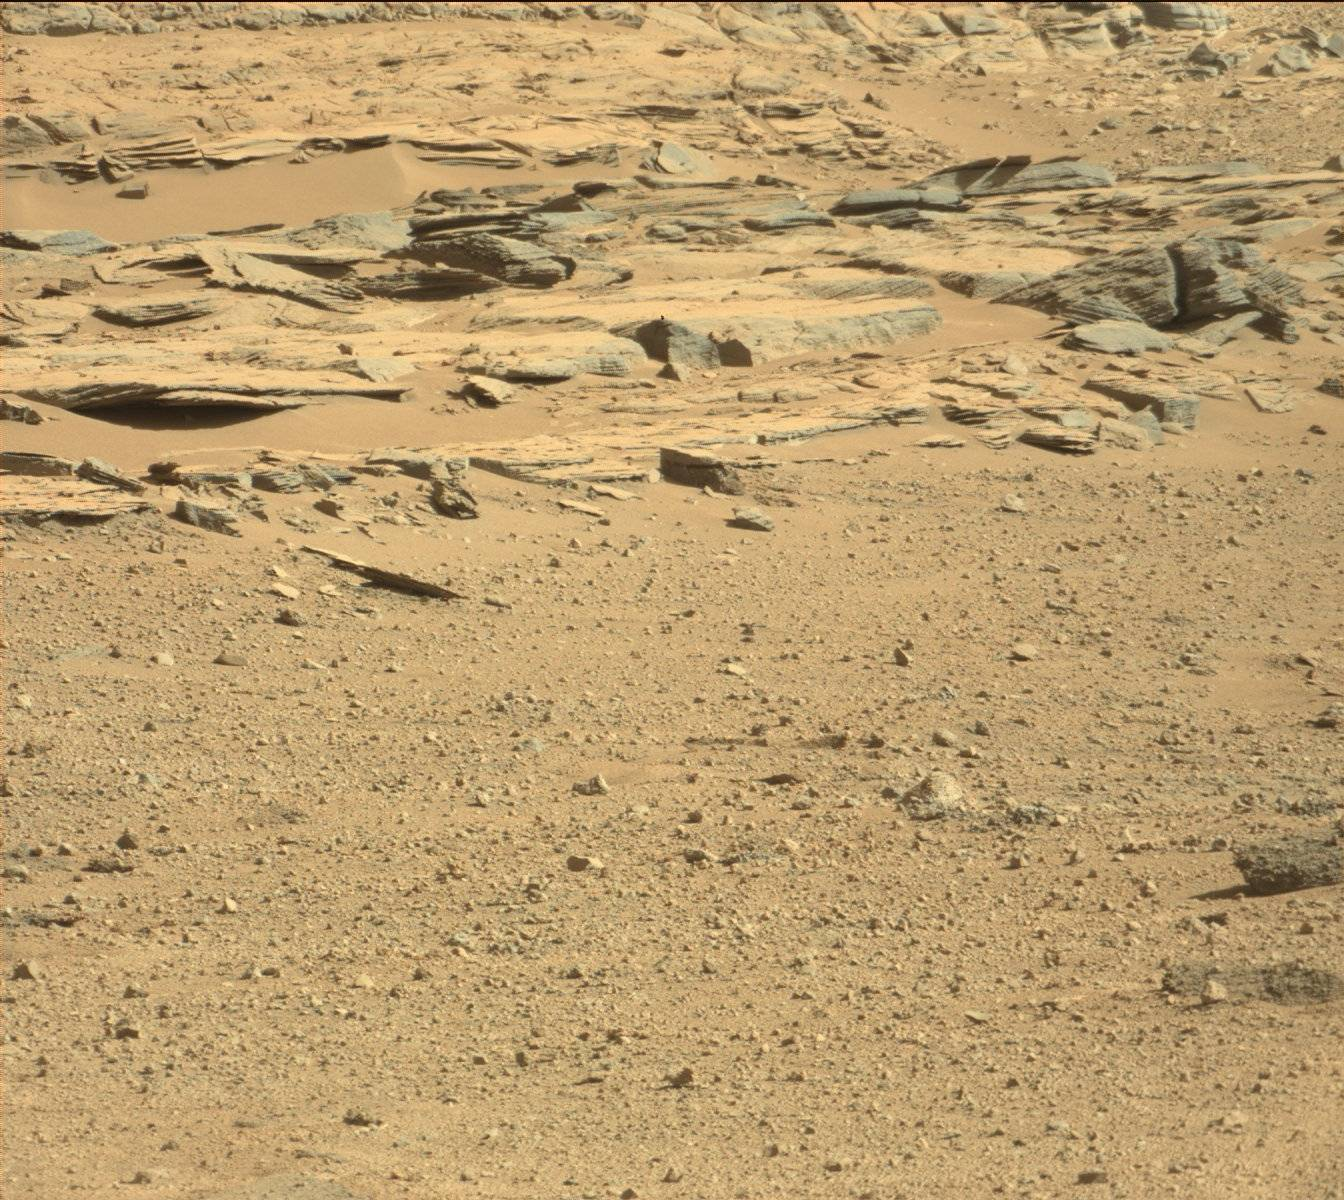 Nasa's Mars rover Curiosity acquired this image using its Mast Camera (Mastcam) on Sol 547